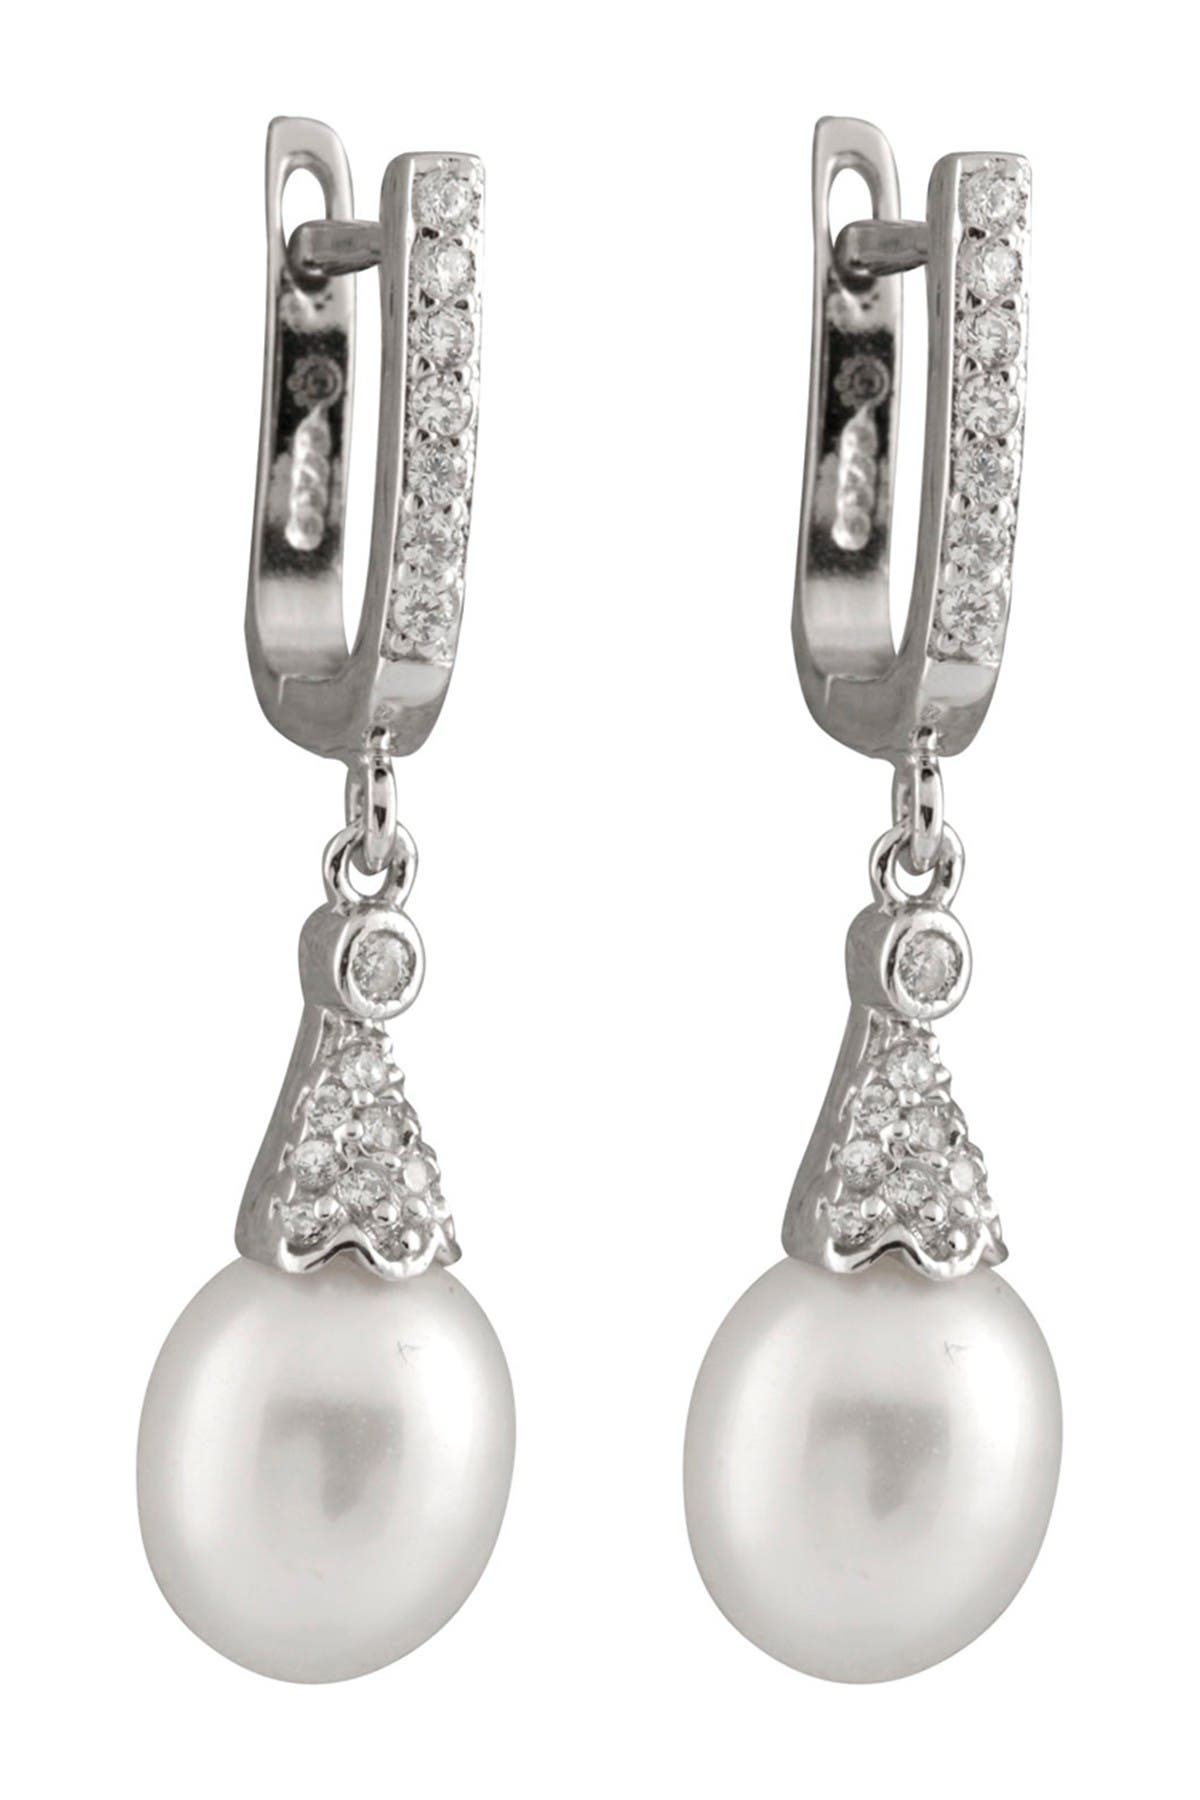 Image of Splendid Pearls 7-8mm Natural White Cultured Freshwater Pearl Drop Earrings